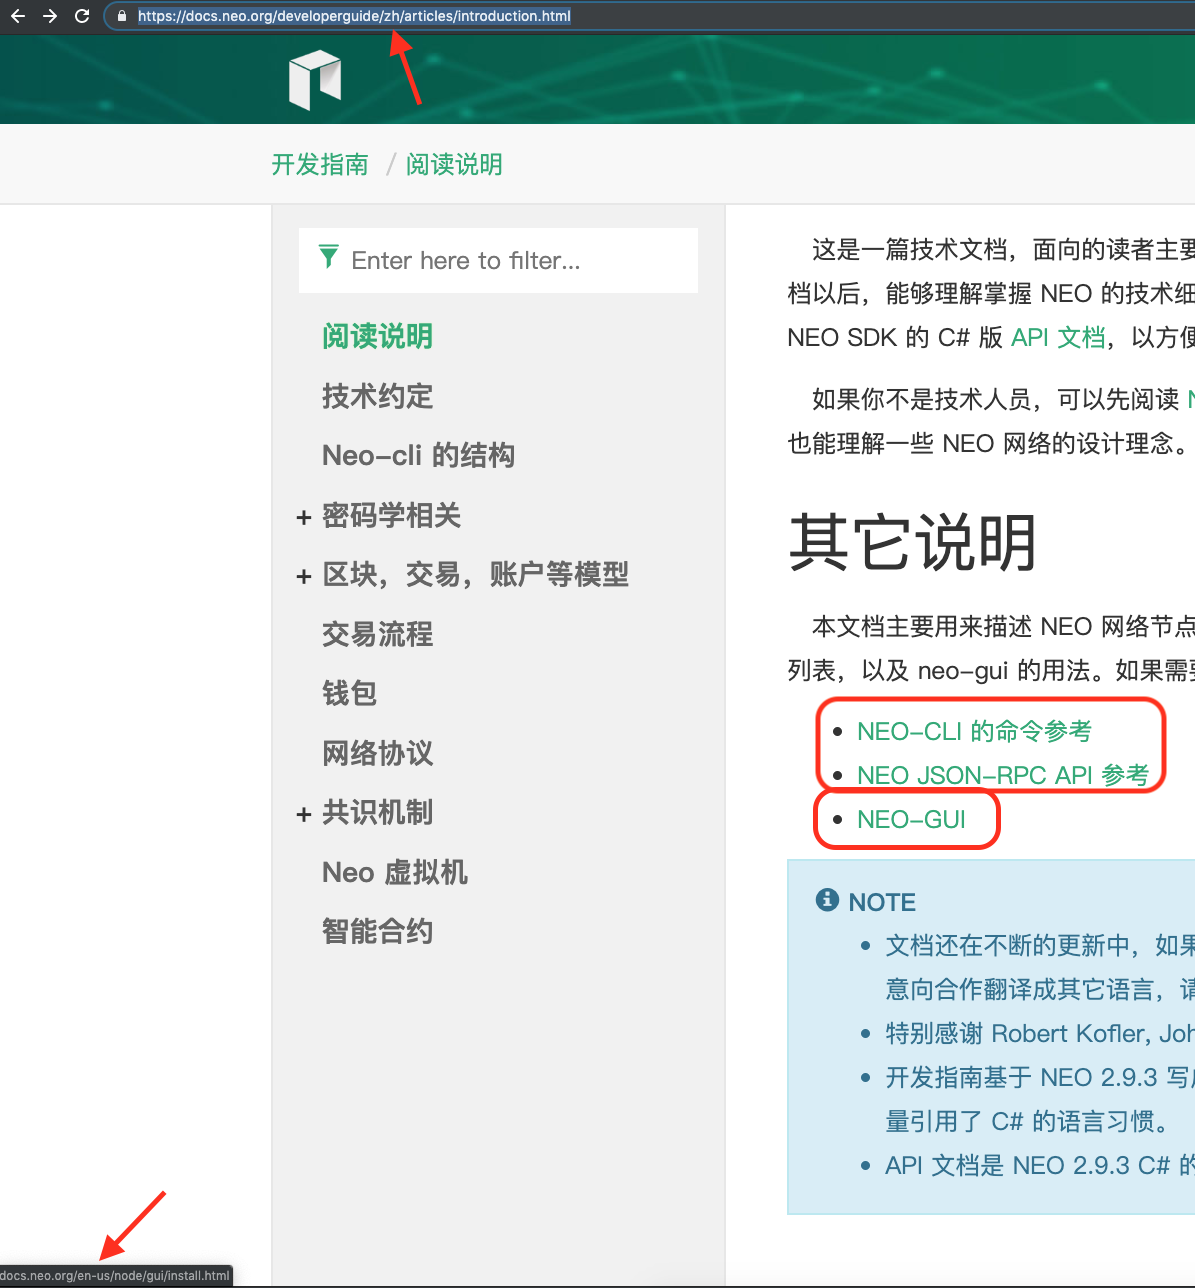 Several URL Link redirect to english version page while